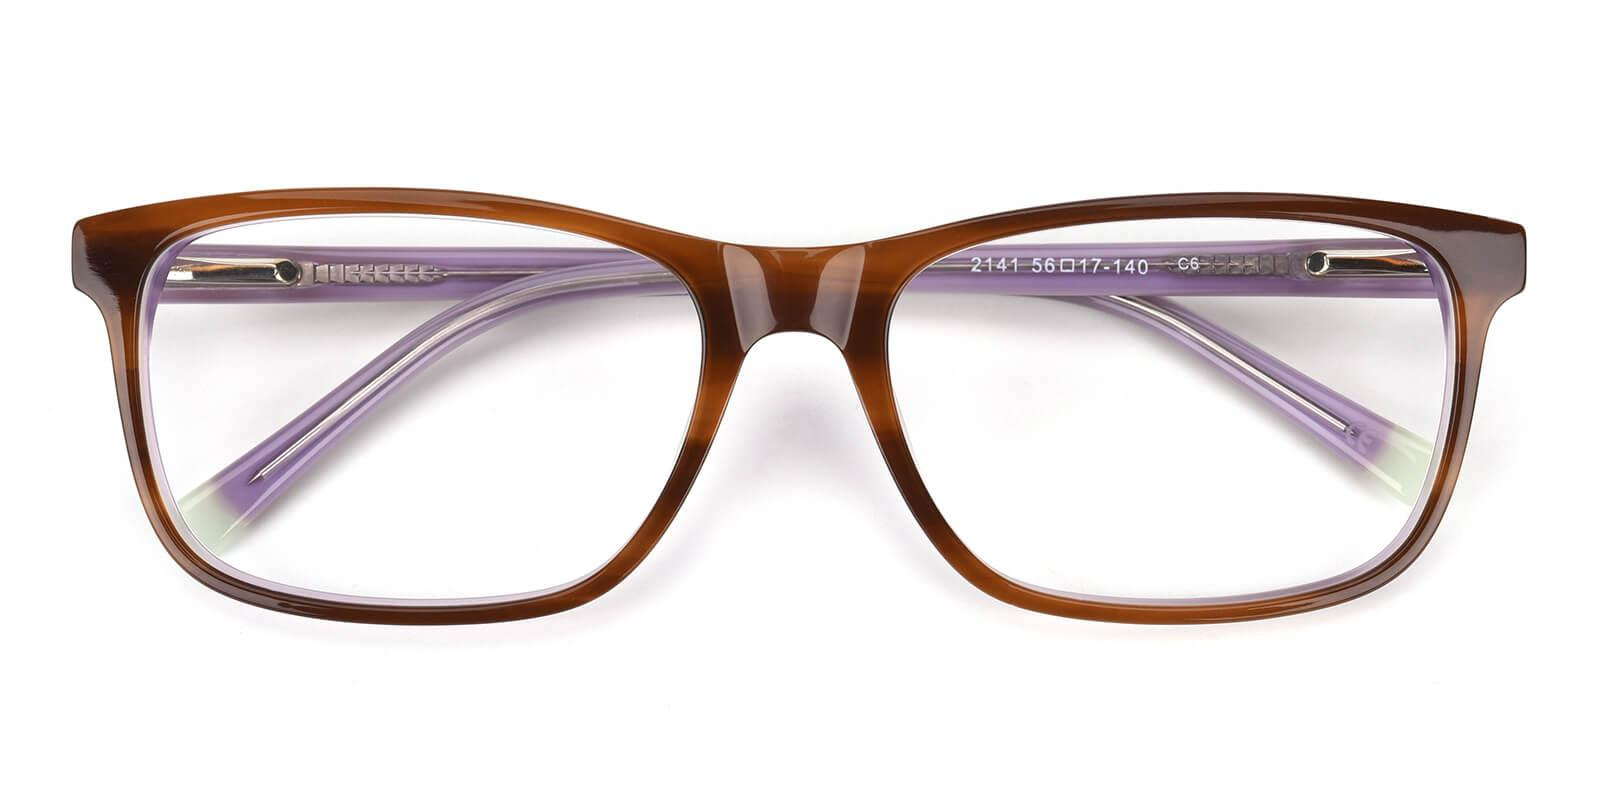 Chief-Brown-Rectangle-Acetate-Eyeglasses-detail